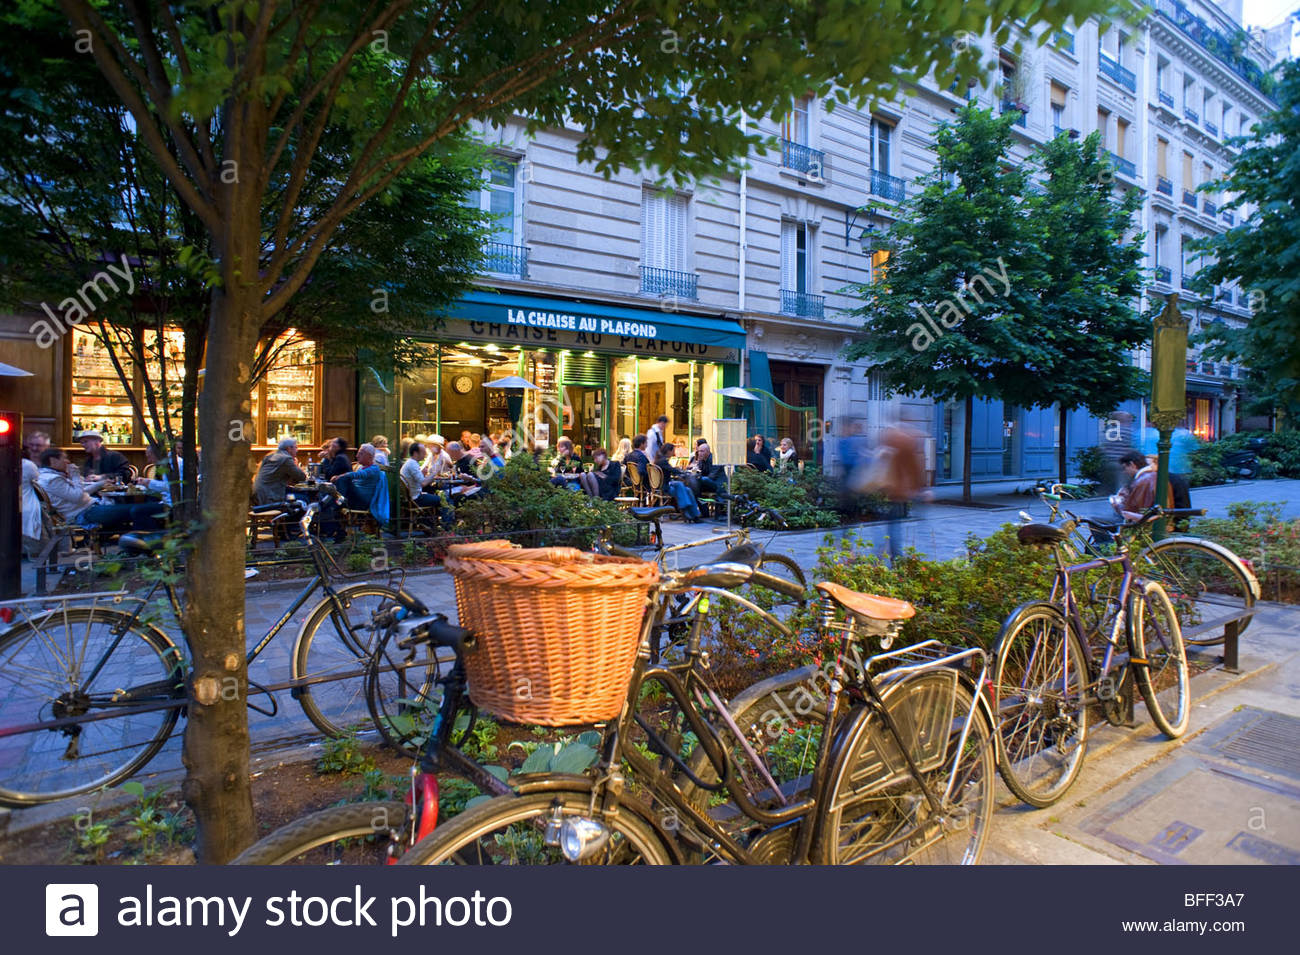 Paris Marais Stock Photo 26762127